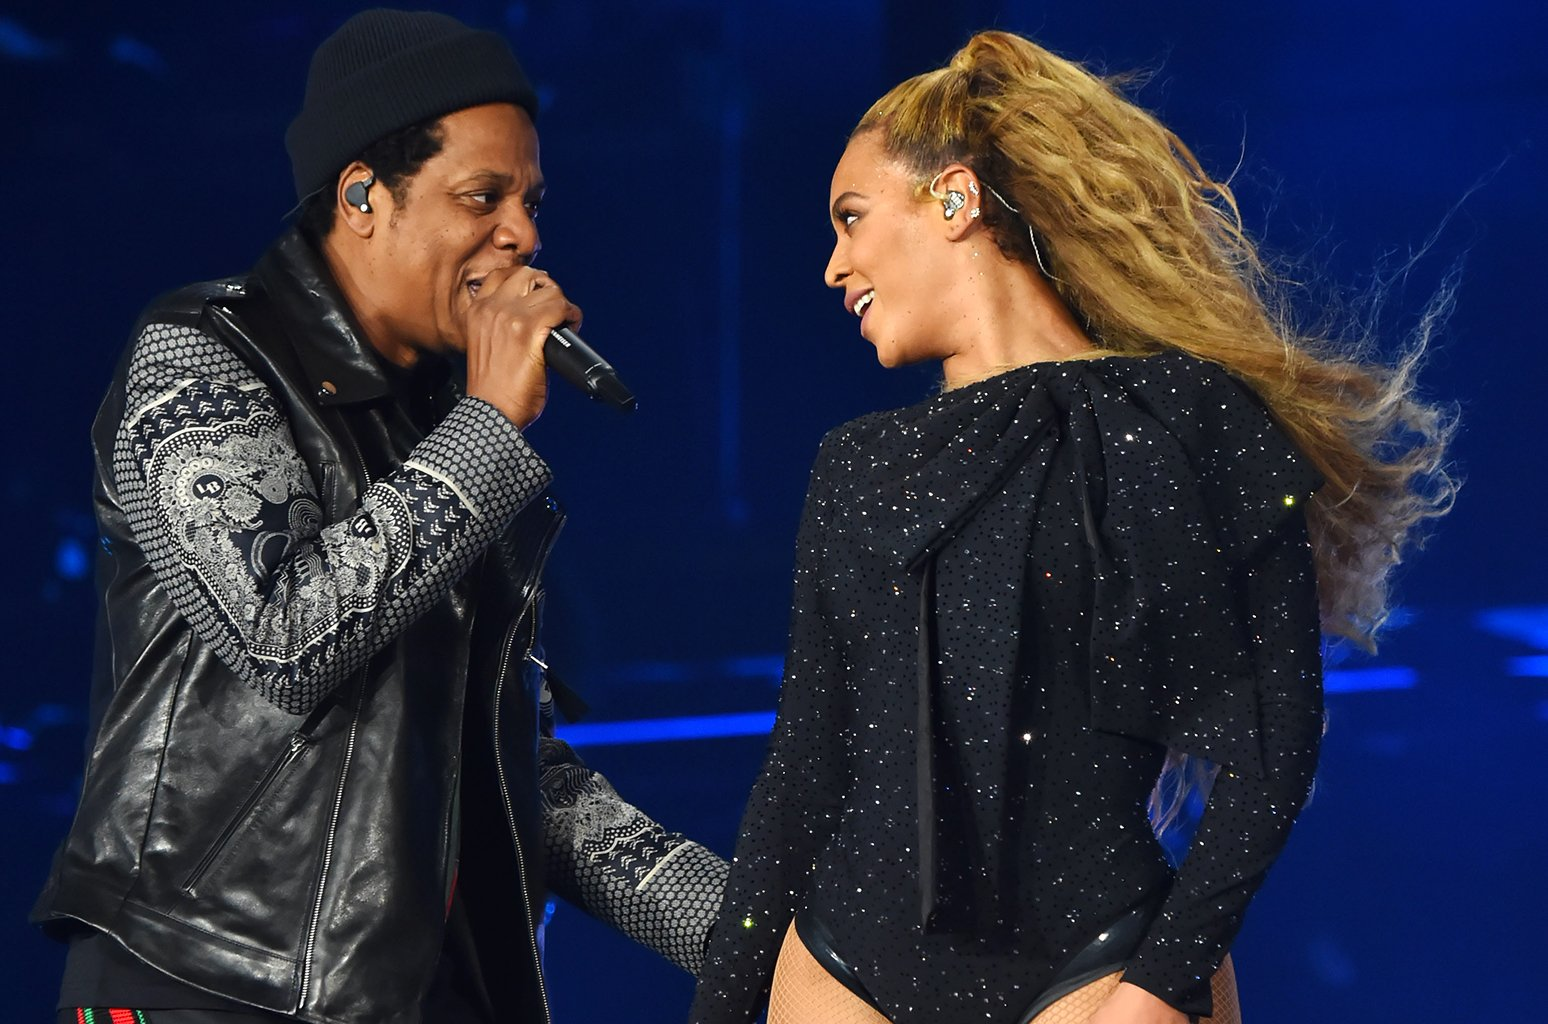 Beyonce & JAY-Z, AKA the Carters, drop joint #EverythingIsLove album https://t.co/DvbnZV5GBE https://t.co/RGQy7CPyQR